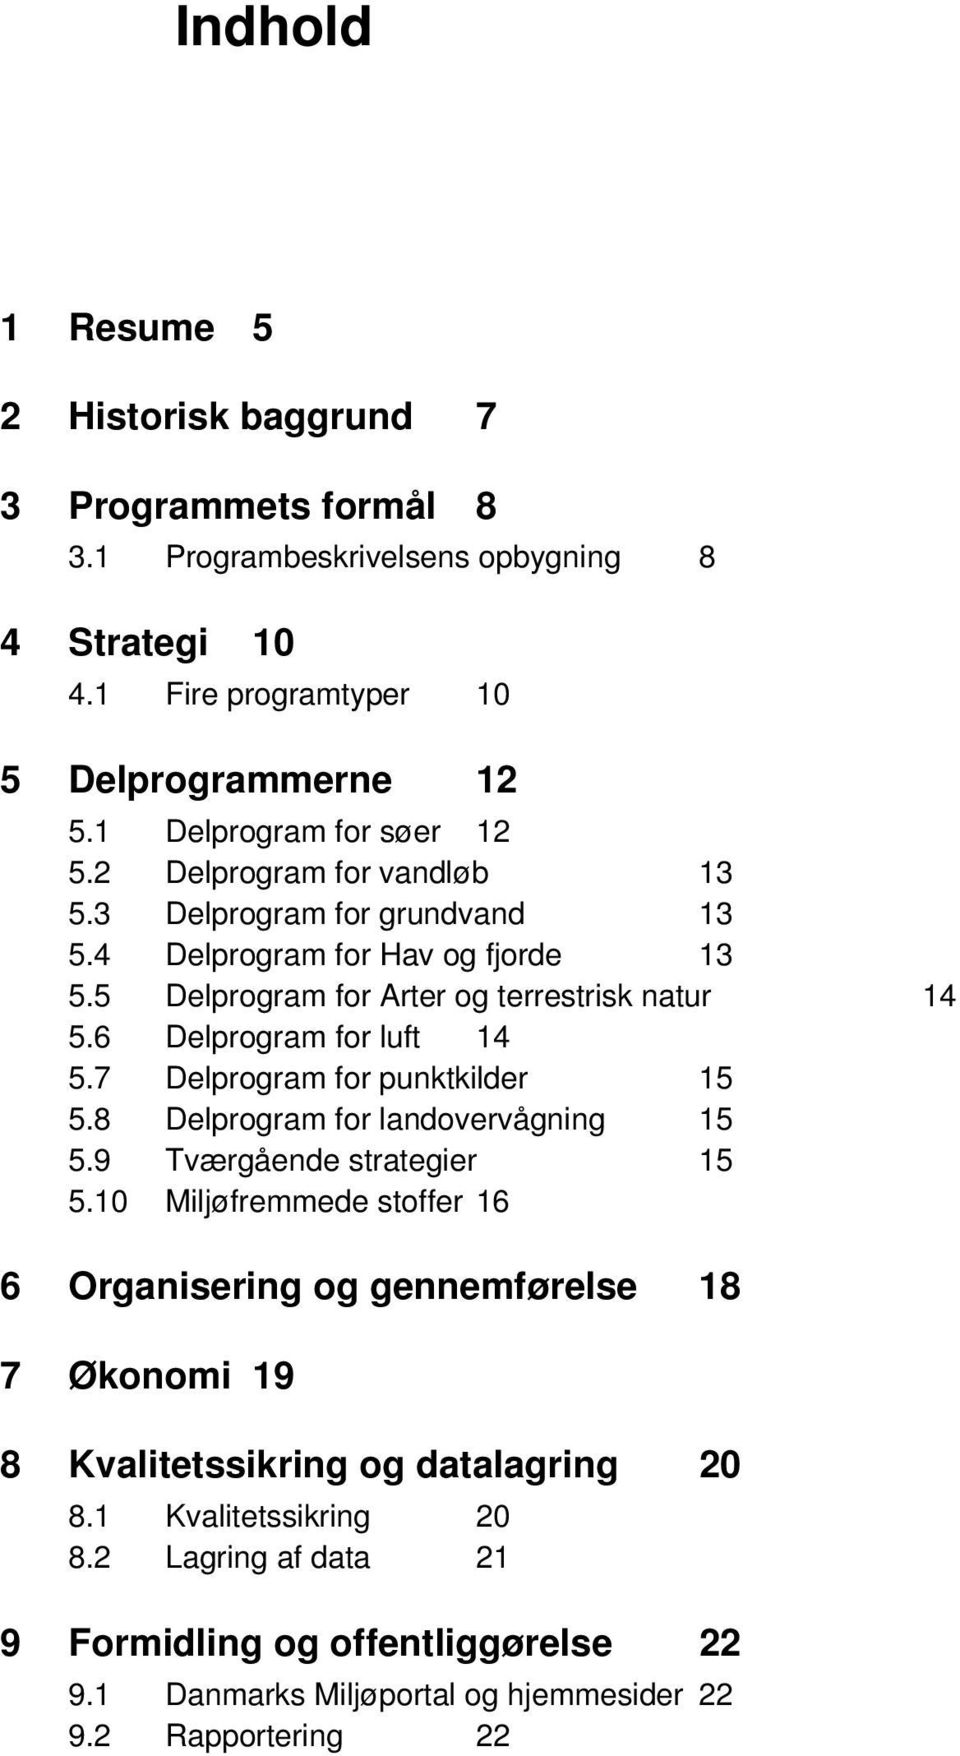 6 Delprogram for luft 14 5.7 Delprogram for punktkilder 15 5.8 Delprogram for landovervågning 15 5.9 Tværgående strategier 15 5.